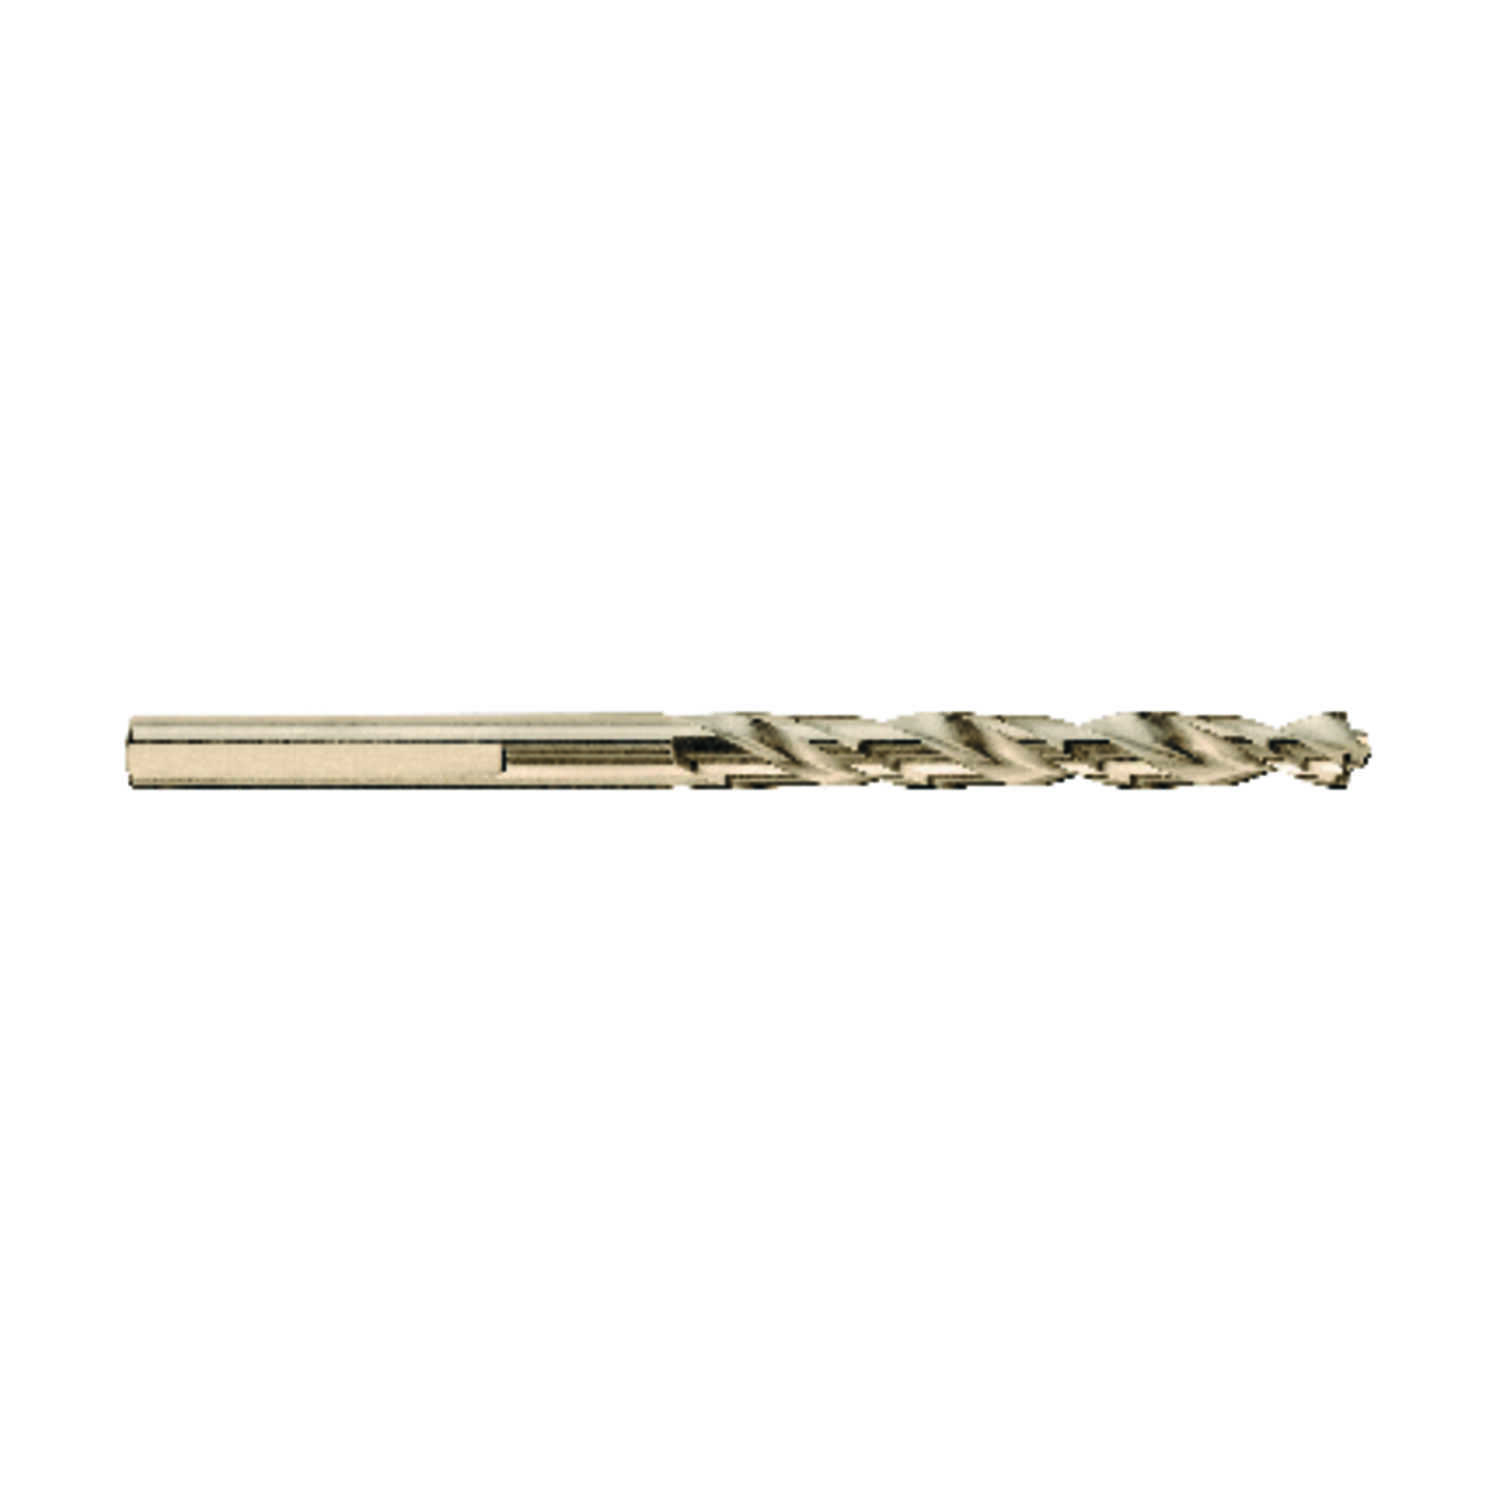 DeWalt  Pilot Point  11/32 in. Dia. x 4-3/4 in. L Split Point Drill Bit  3-Flat Shank  1 pc. High Sp